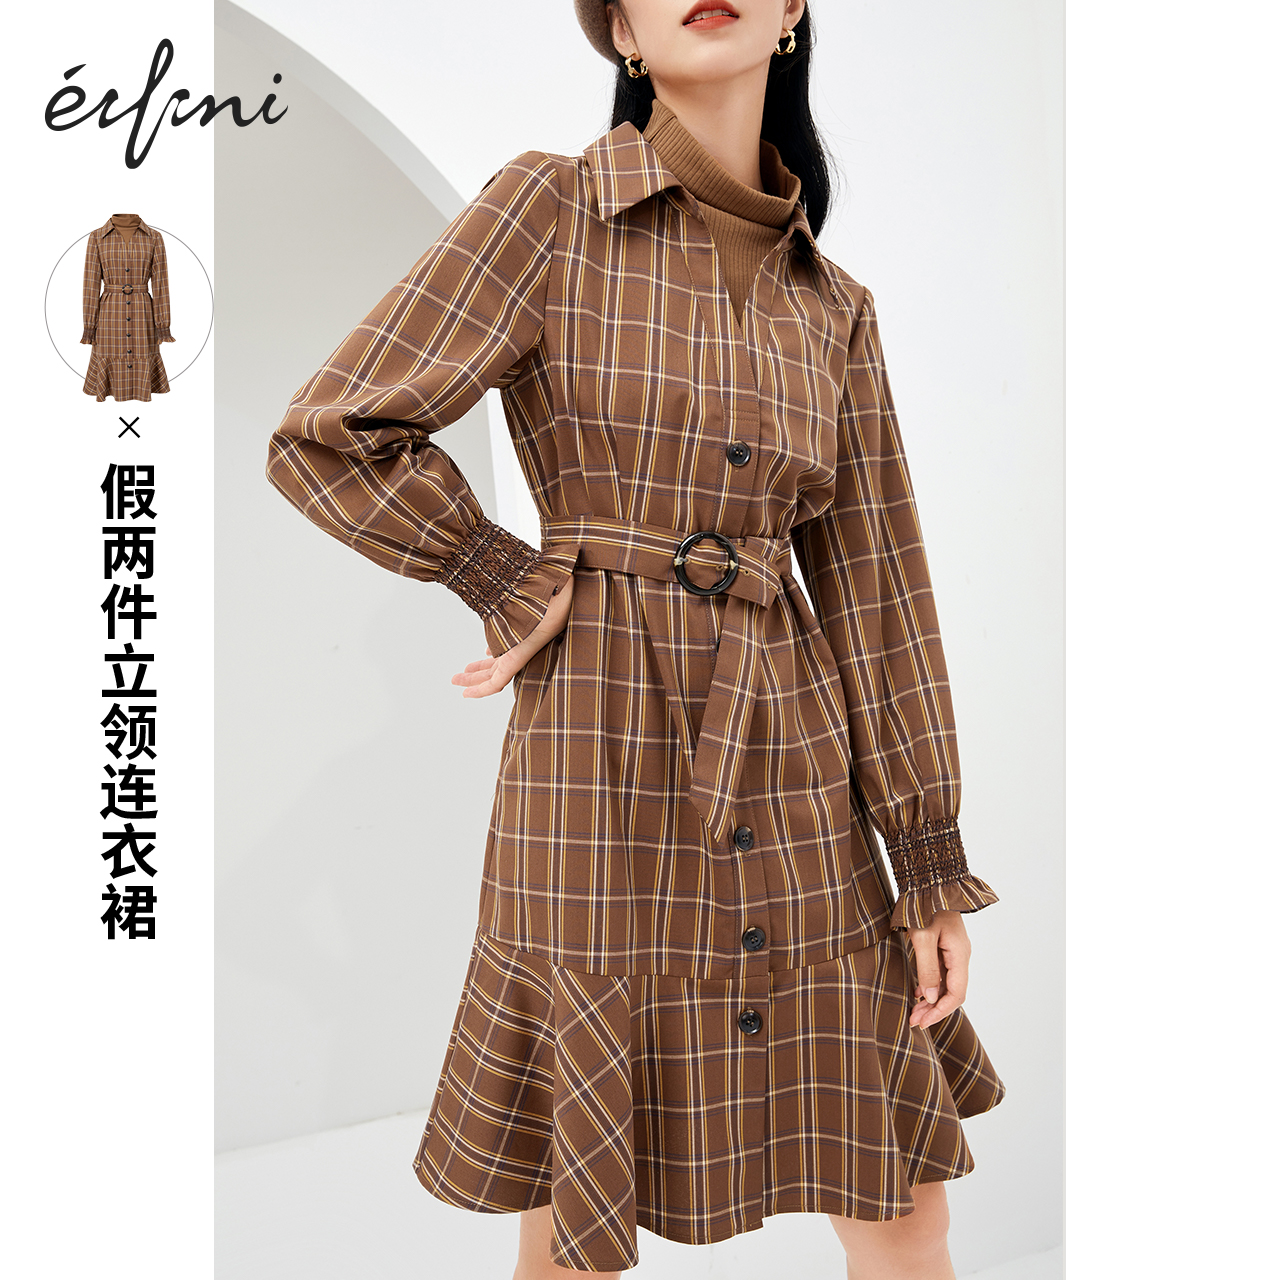 Eveli stand-collar fake two-piece dress 2020 new autumn and winter dress is thin and long-sleeved temperament plaid skirt women